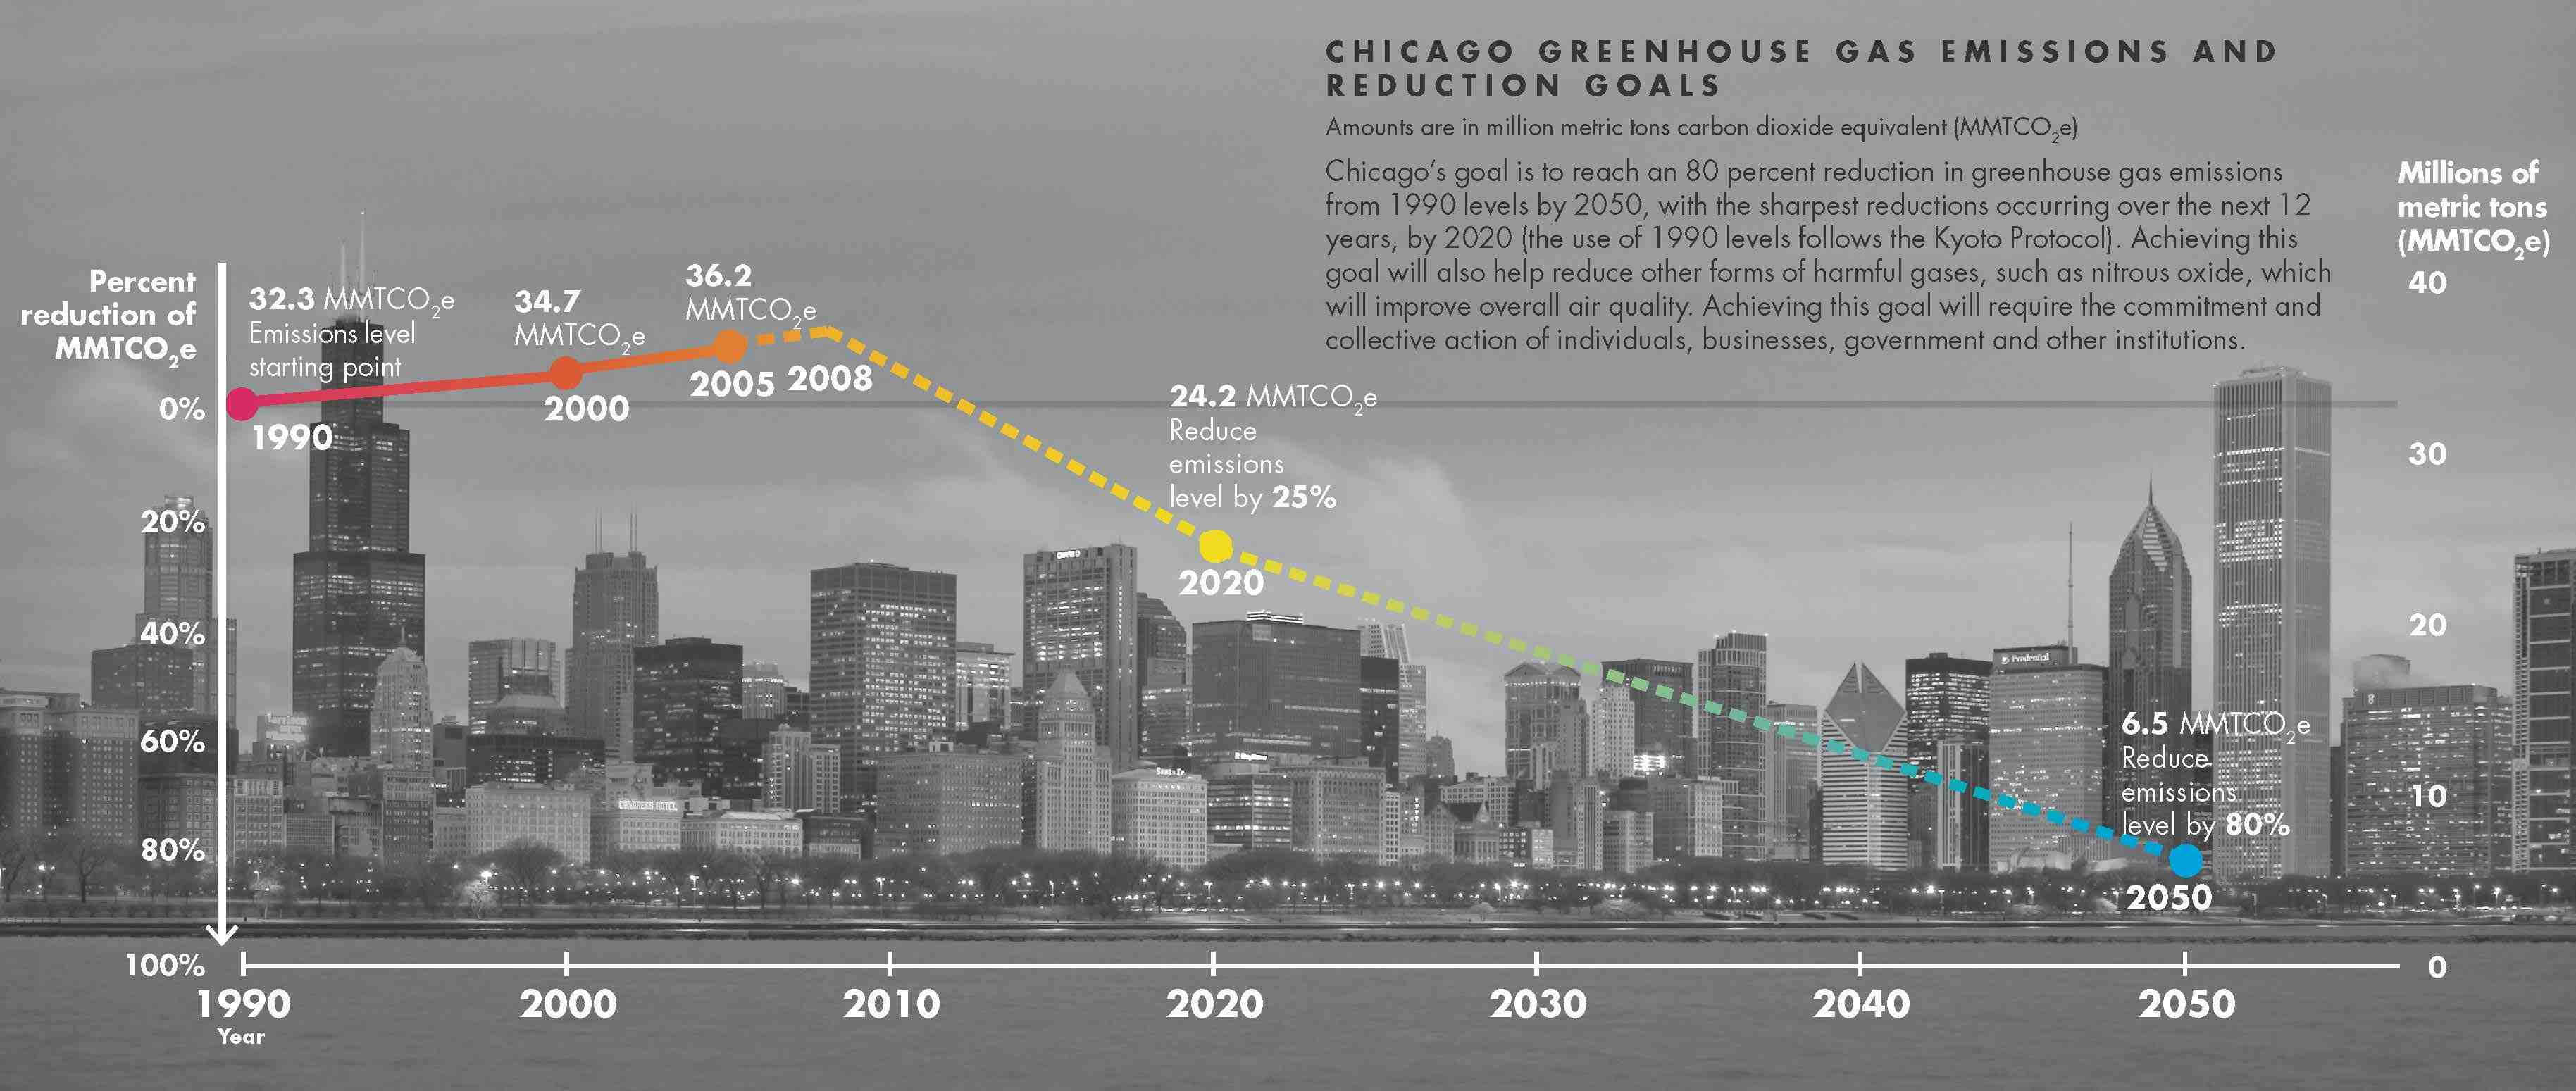 Chicago Greenhouse Gas Emissions and Reduction Goals